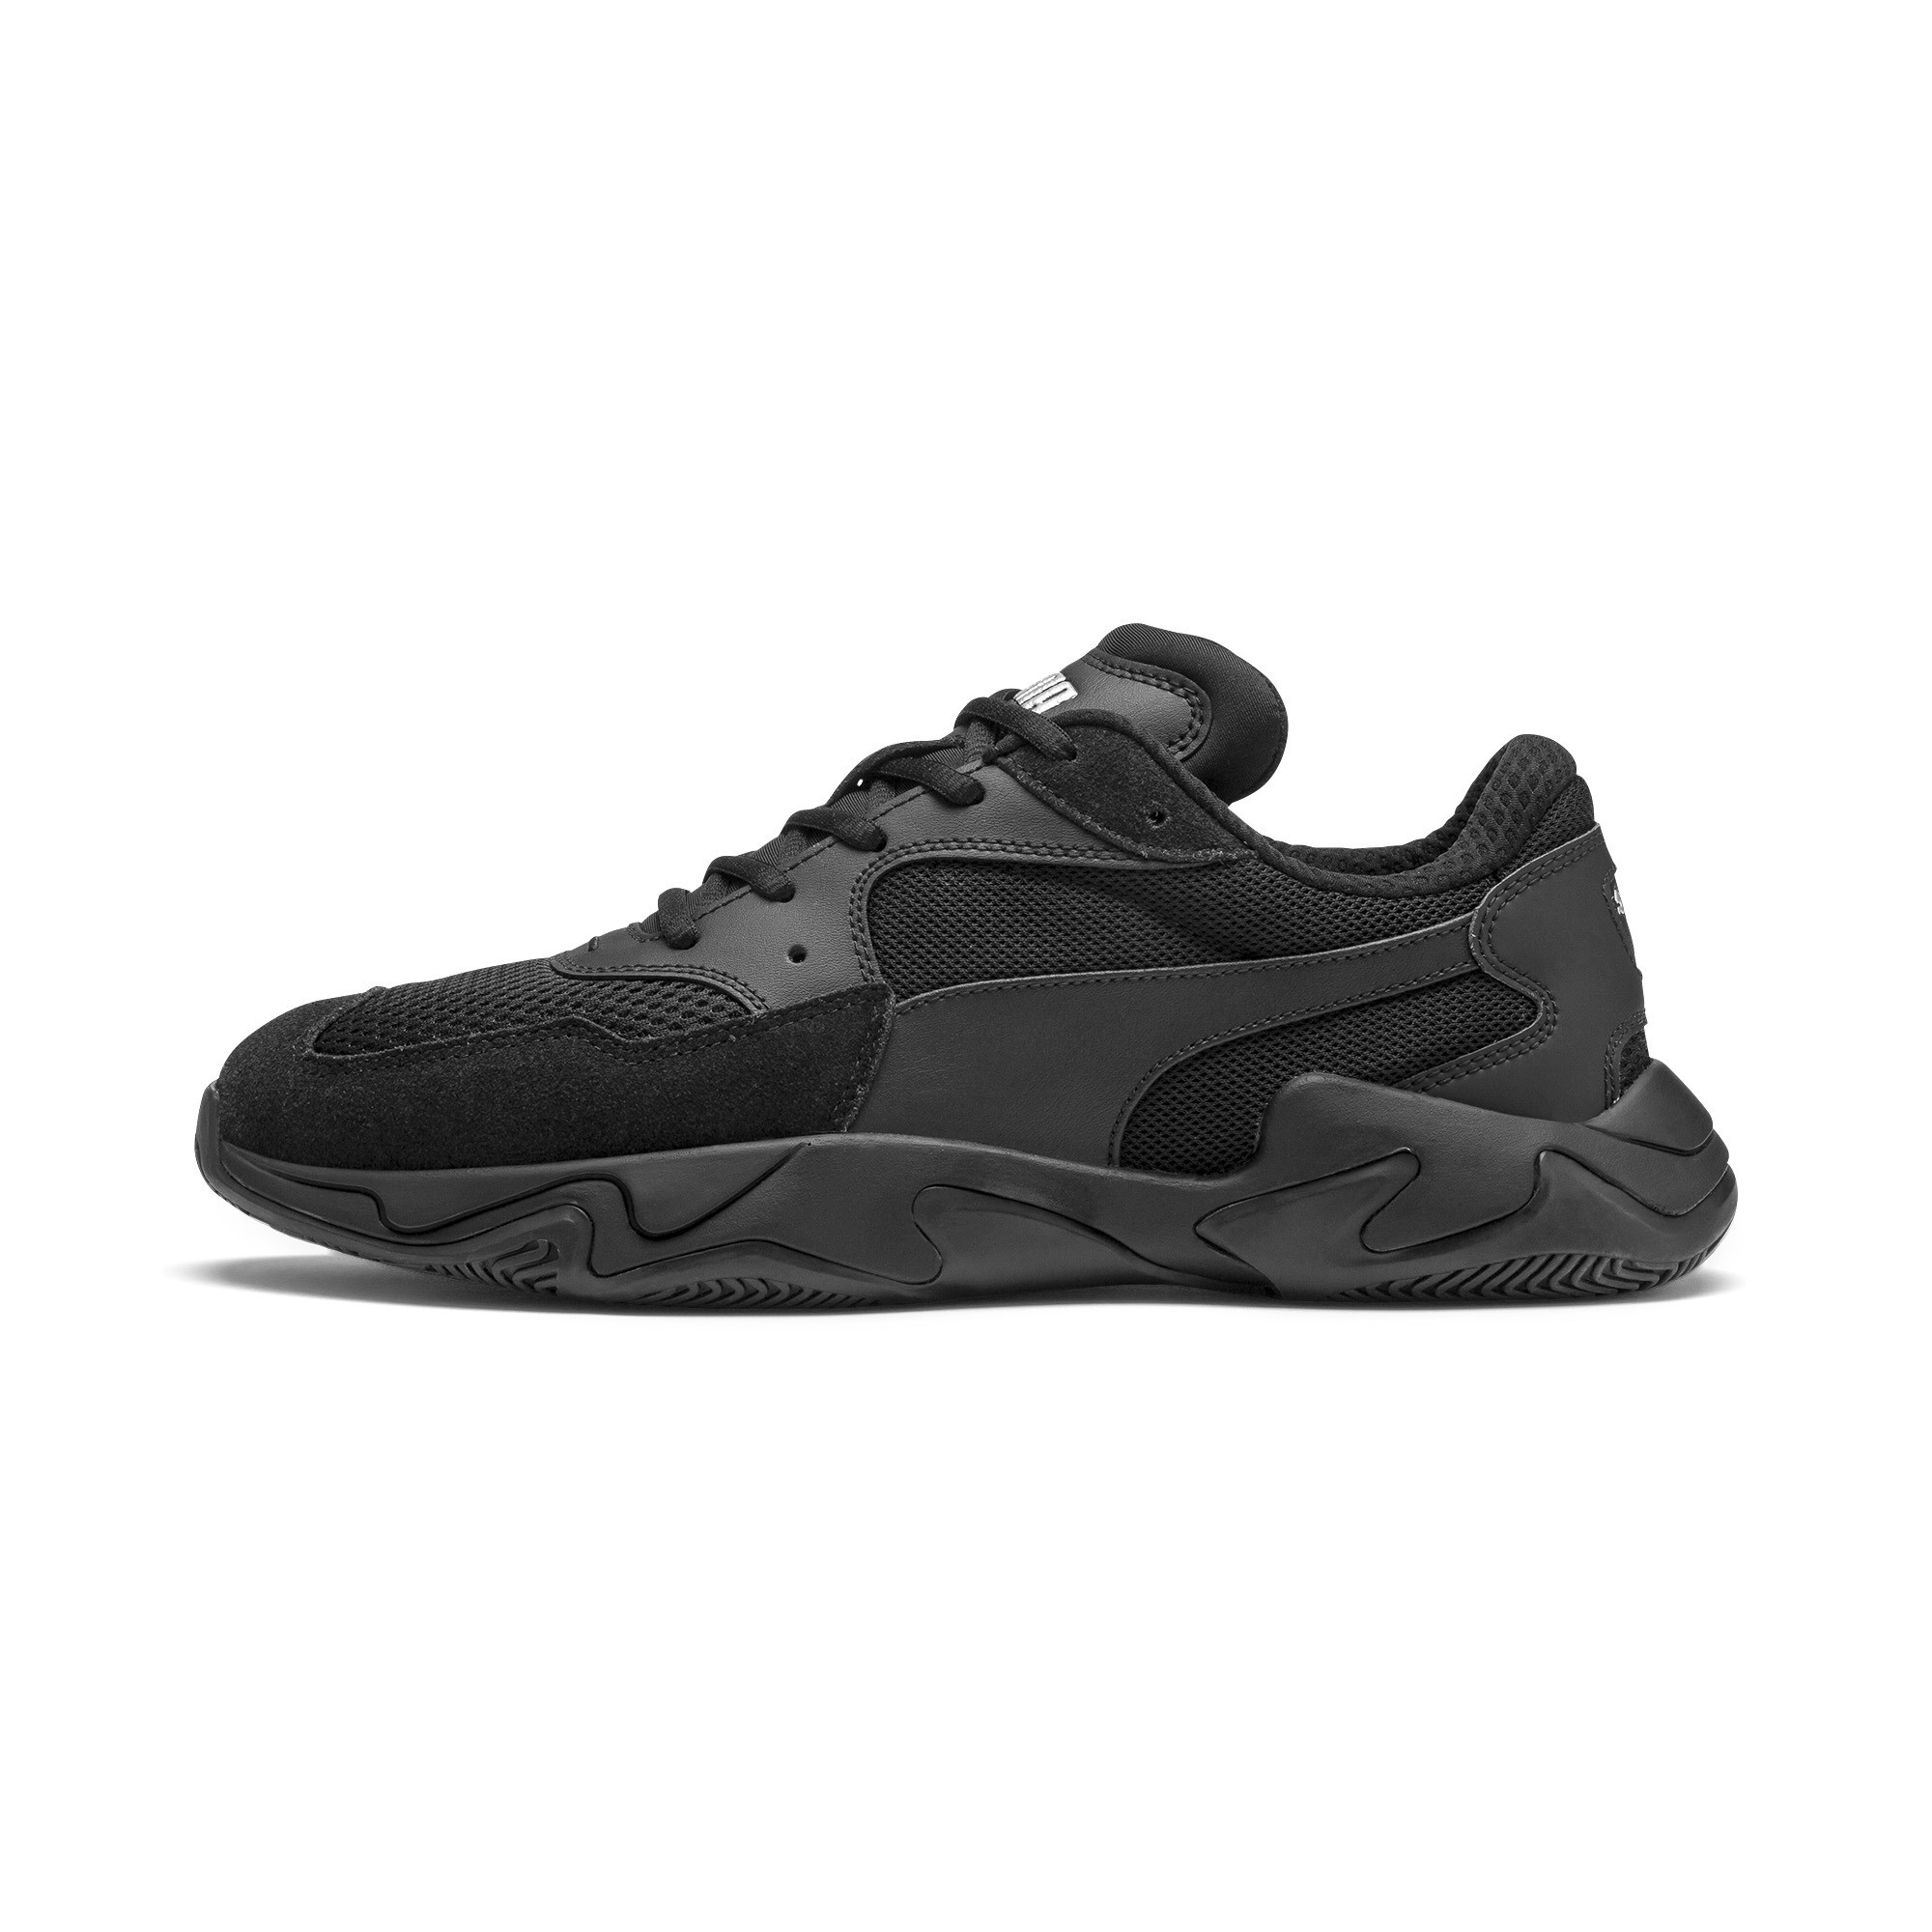 PUMA-Storm-Origin-Sneakers-Unisex-Shoe-Evolution thumbnail 4